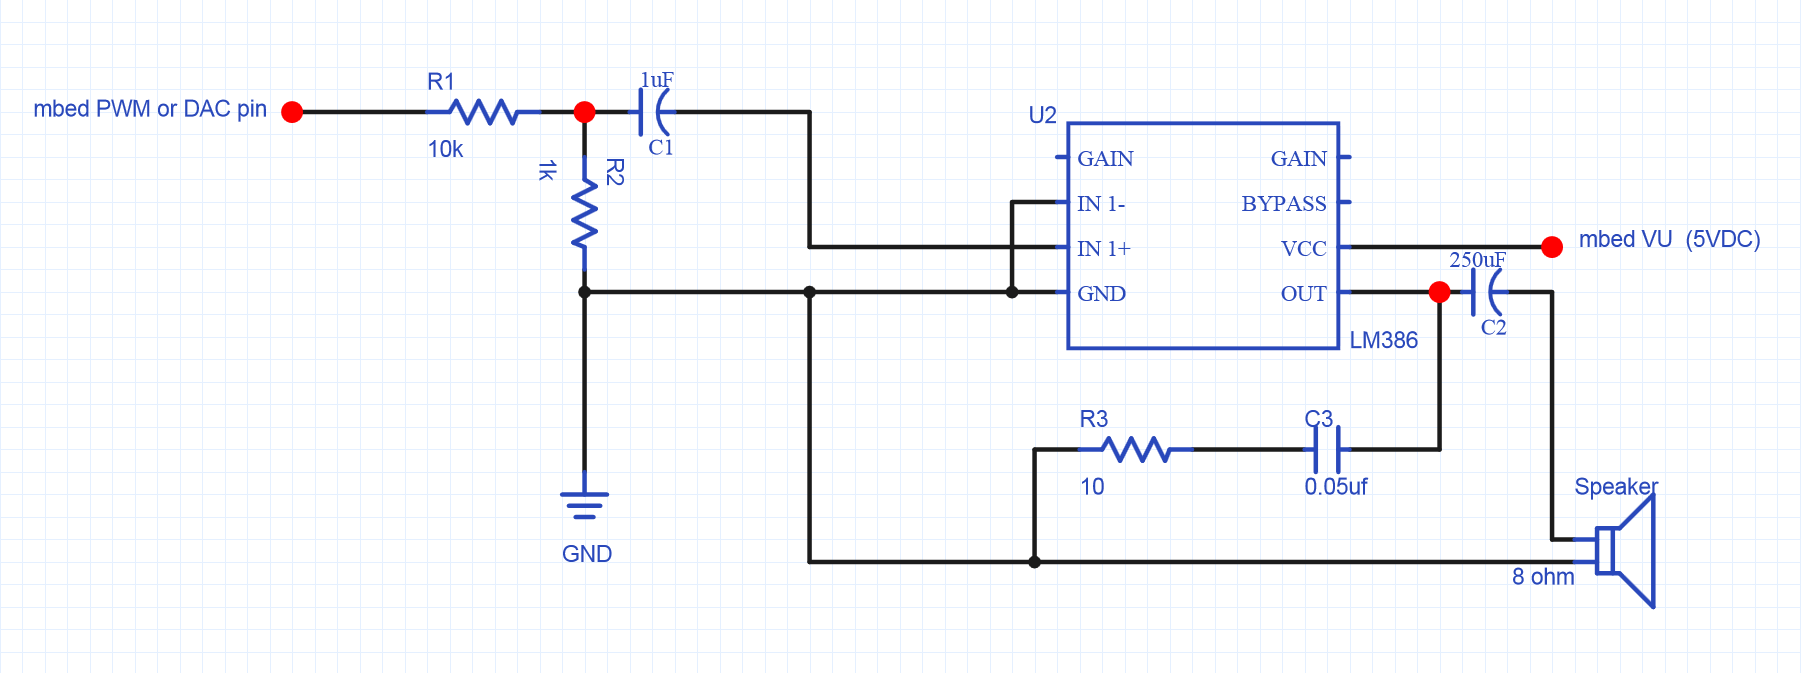 Using A Speaker For Audio Output Mbed Ra53 Stereo Headphone Amplifier Connection Schematic Lm386 Circuit Small 8ohm 5w Smaller Value R1 Can Be Used To Increase The Volume